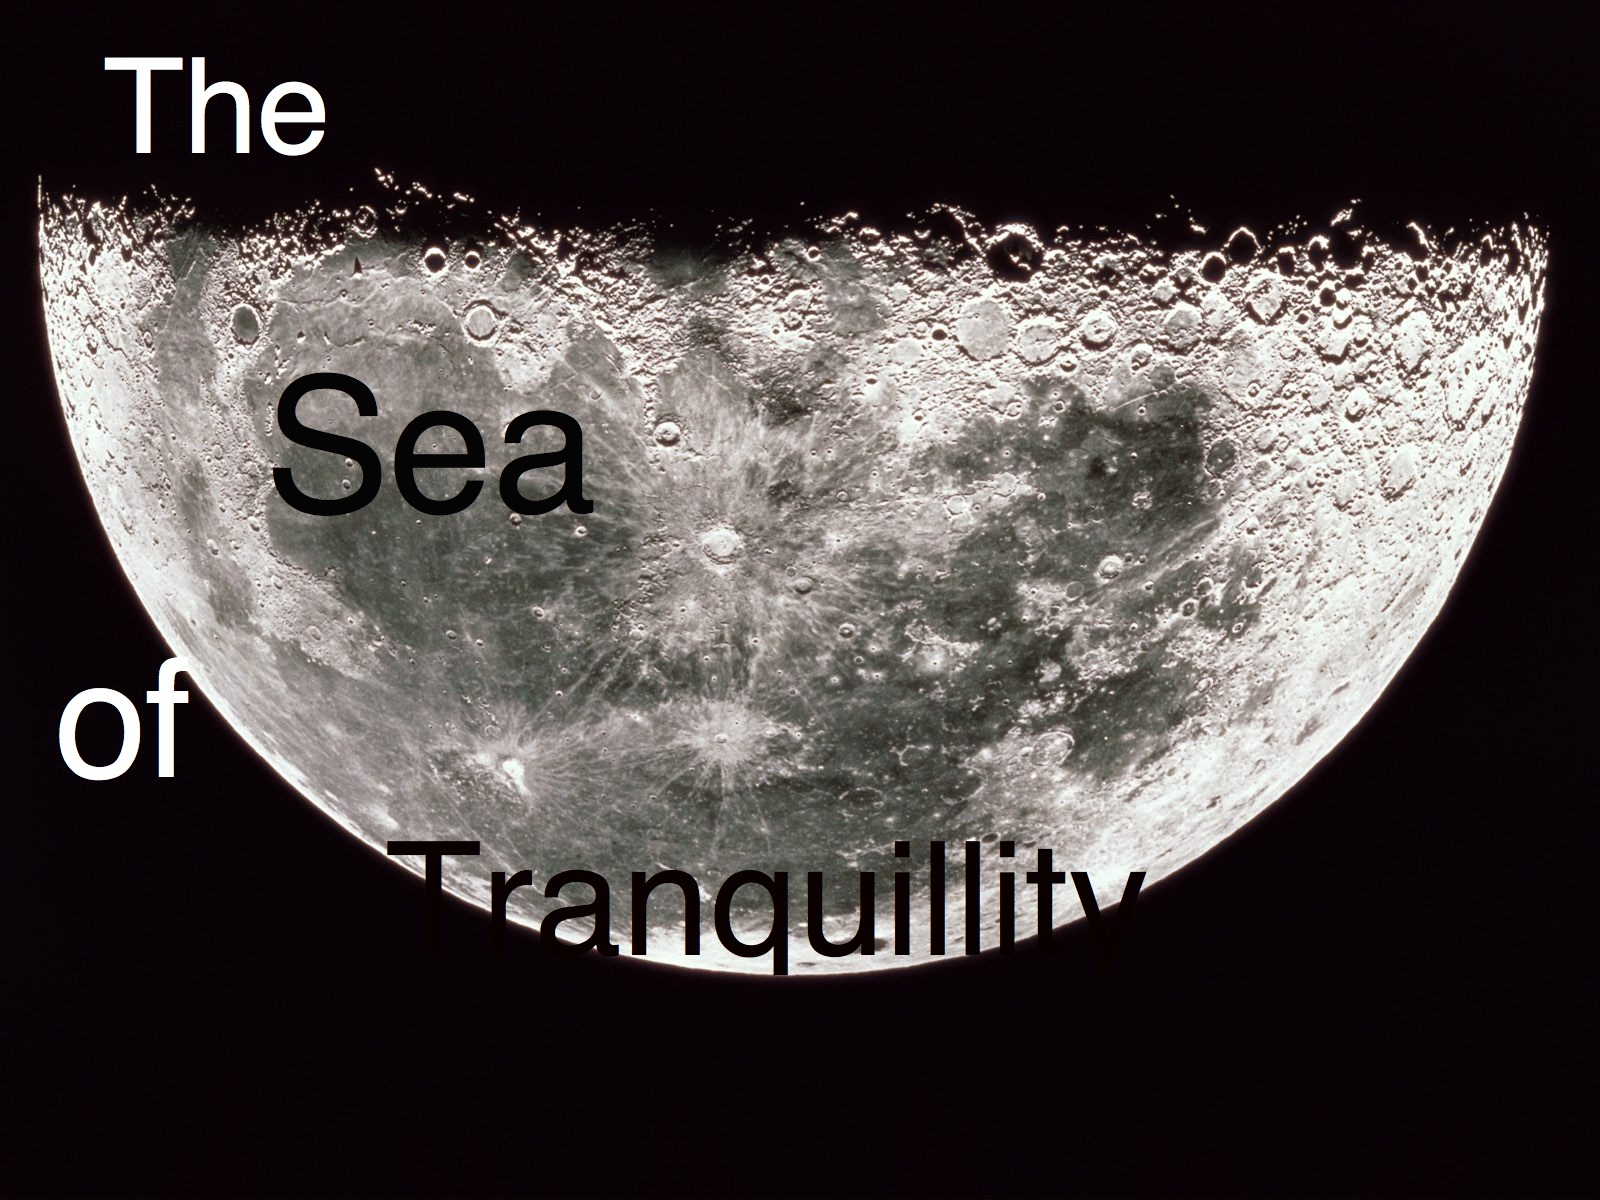 The Sea of Tranquillity